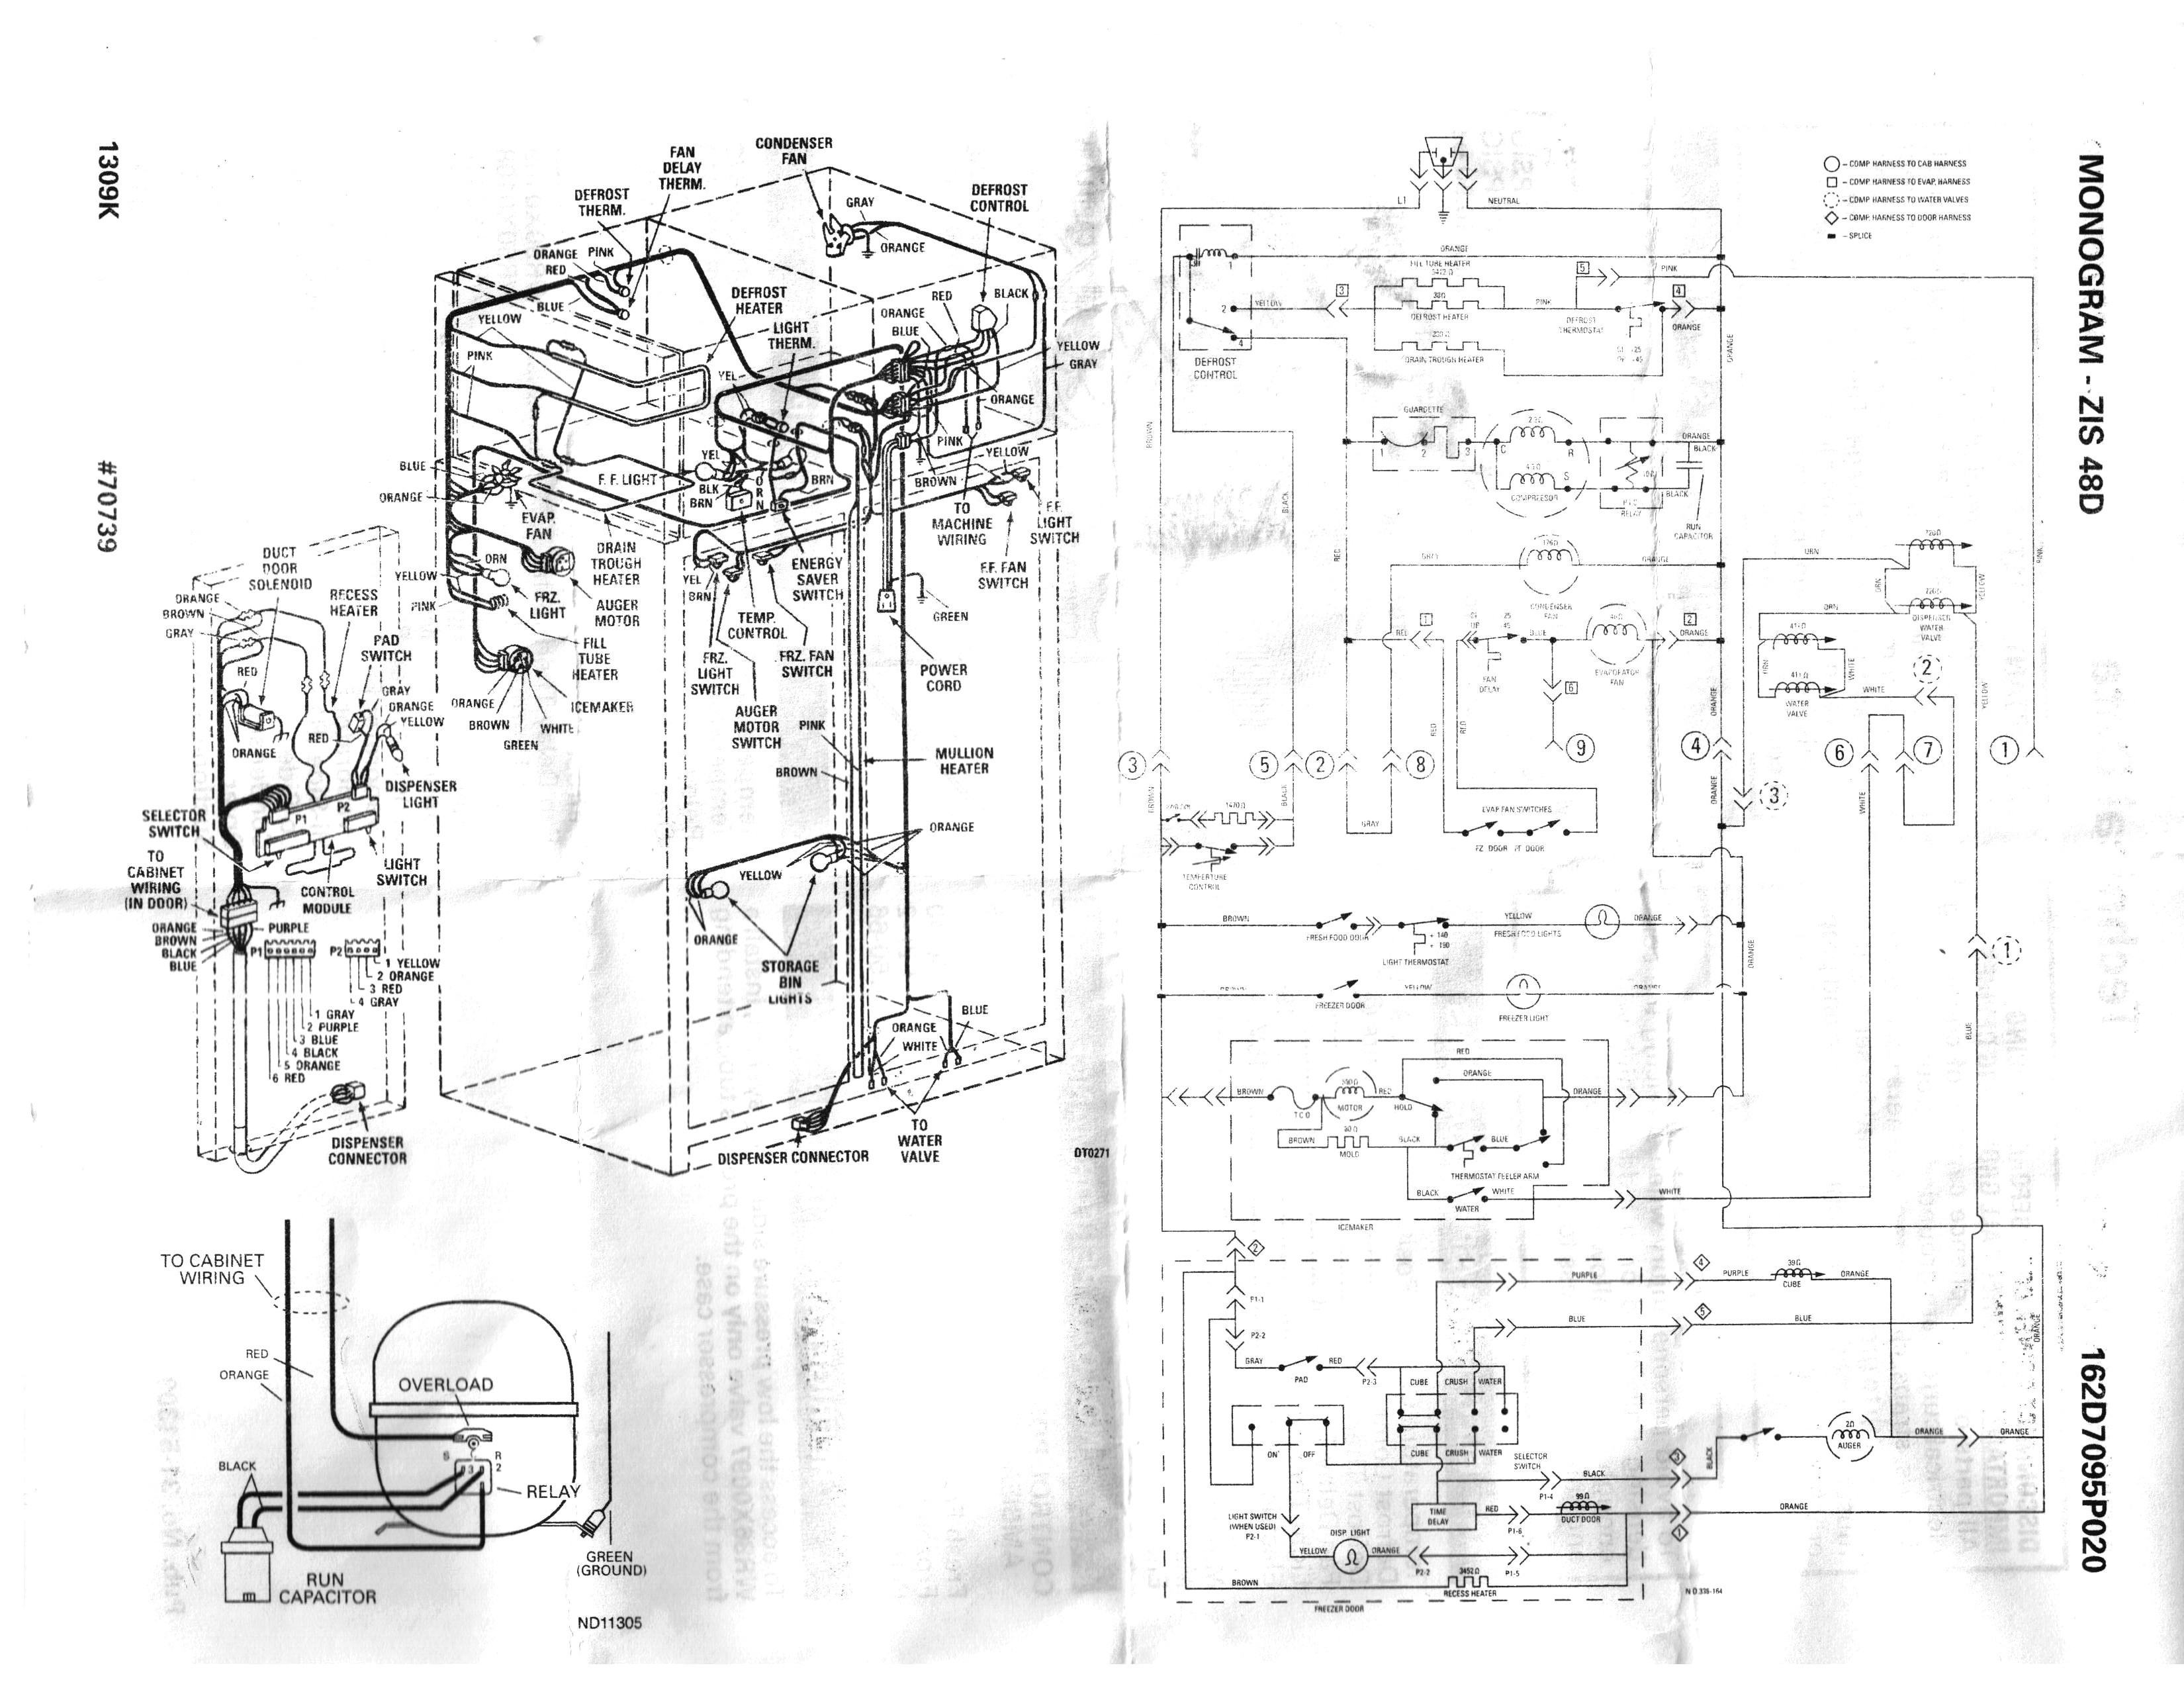 Refrigerator Wiring Diagrams For Ge Gss20Gewj Bb | Wiring Diagram - Ge Refrigerator Wiring Diagram